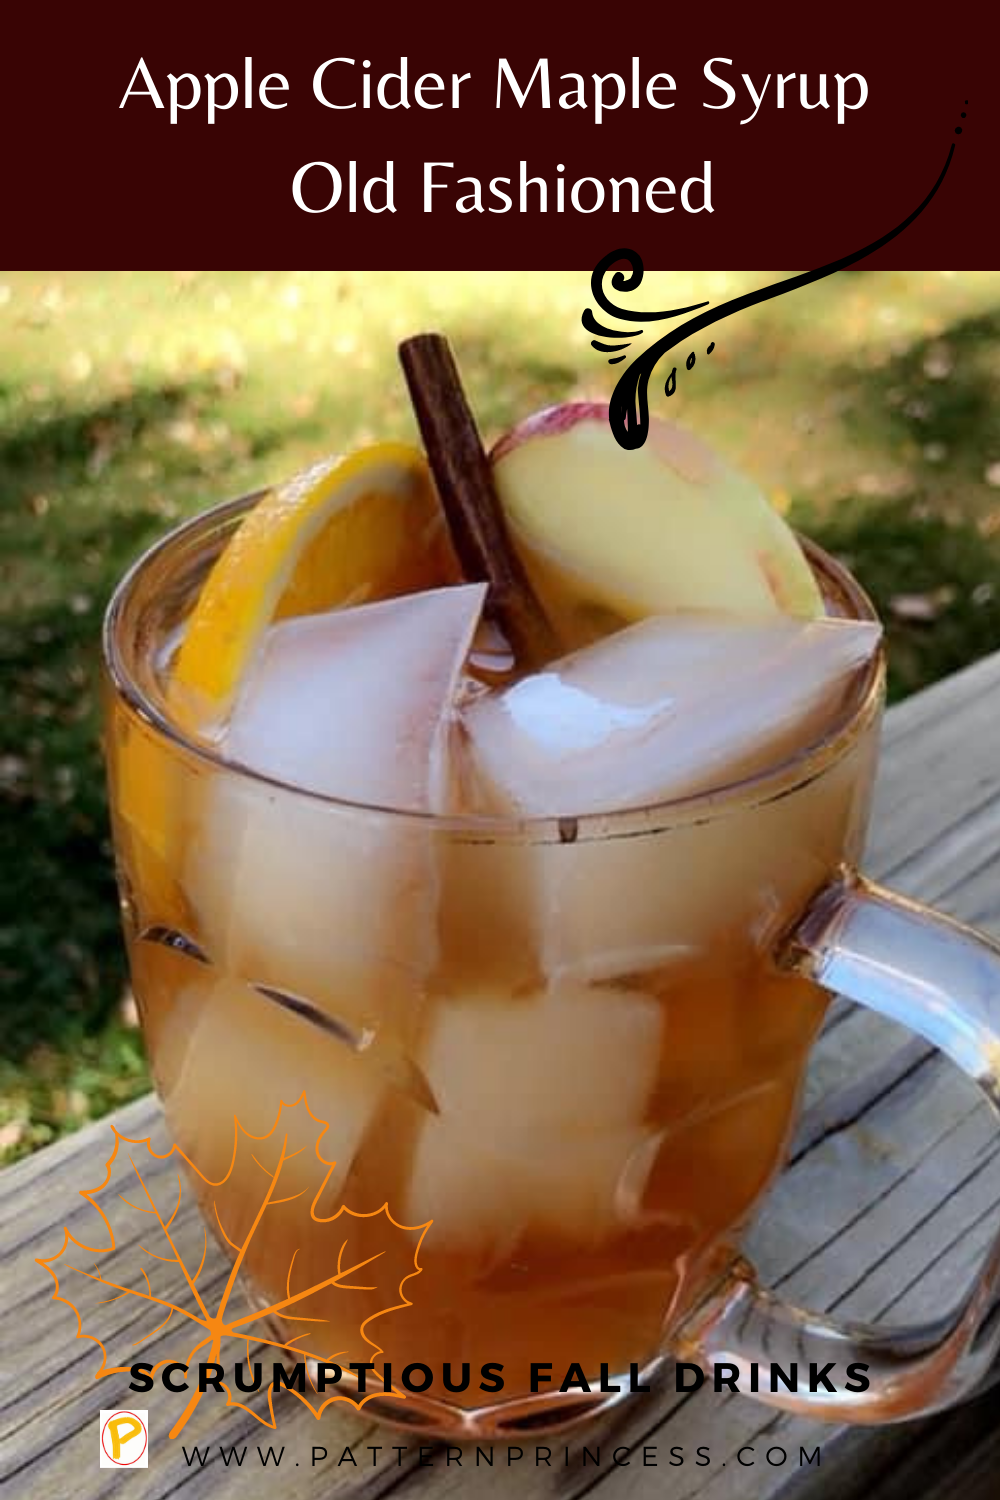 Apple Cider Maple Syrup Old Fashioned